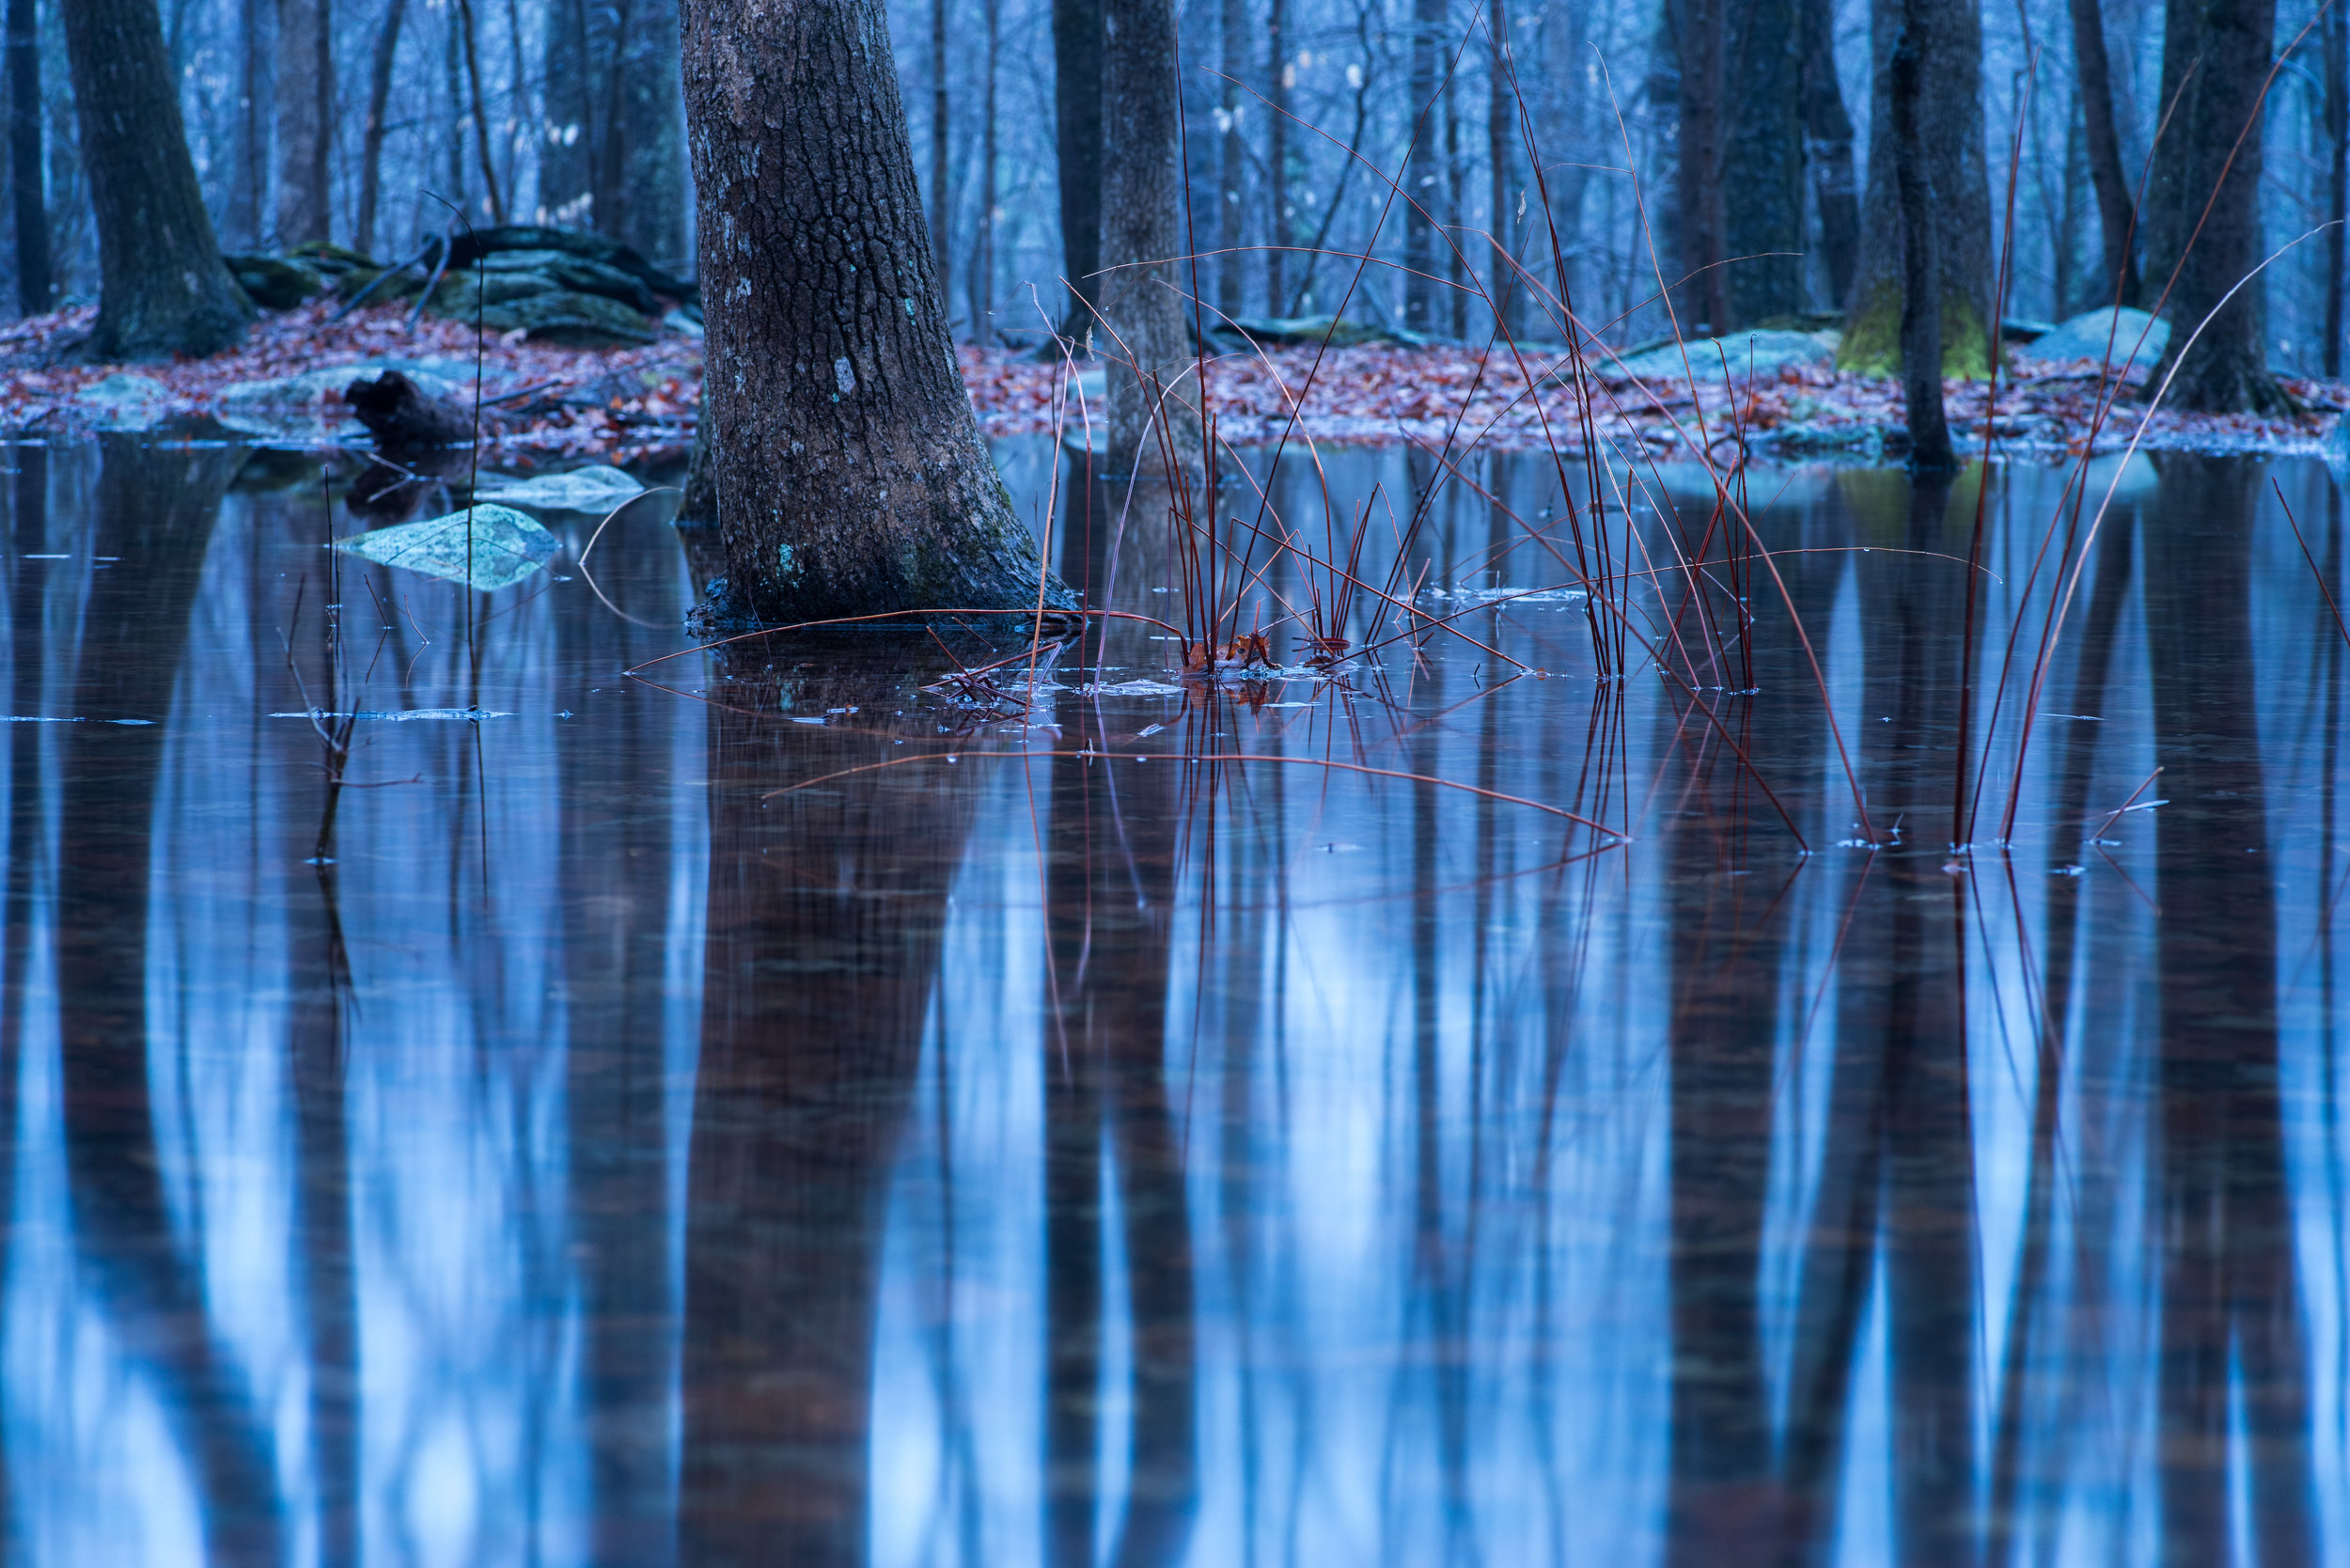 reflections_vernal_pool.jpg